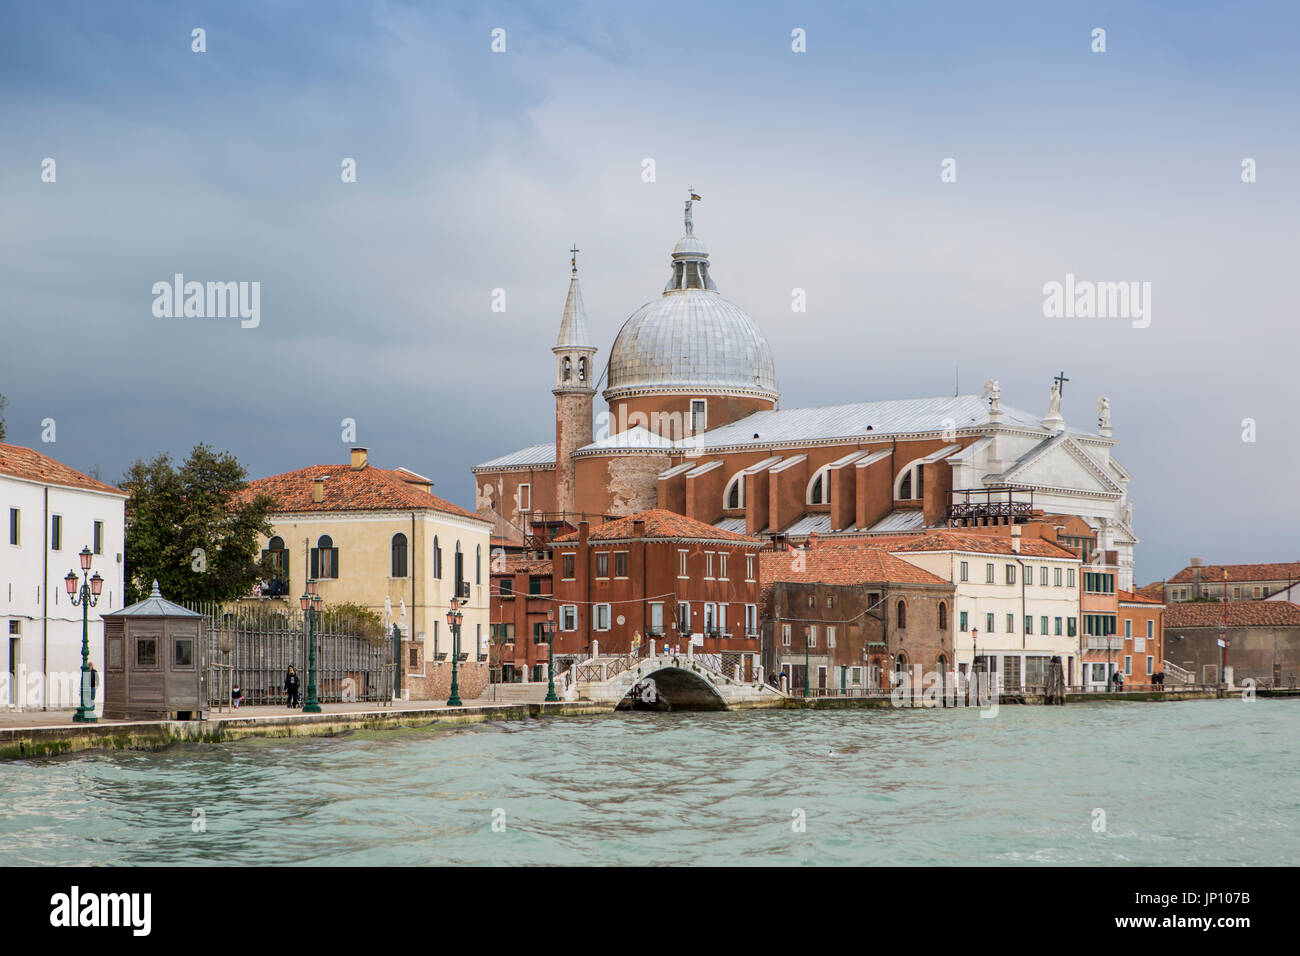 Venice, Italy - April 23, 2012: Church of Il Santissimo Redentore, from the Giudecca Canal, Venice, Italy, a 16th-century church designed by Palladio. - Stock Image